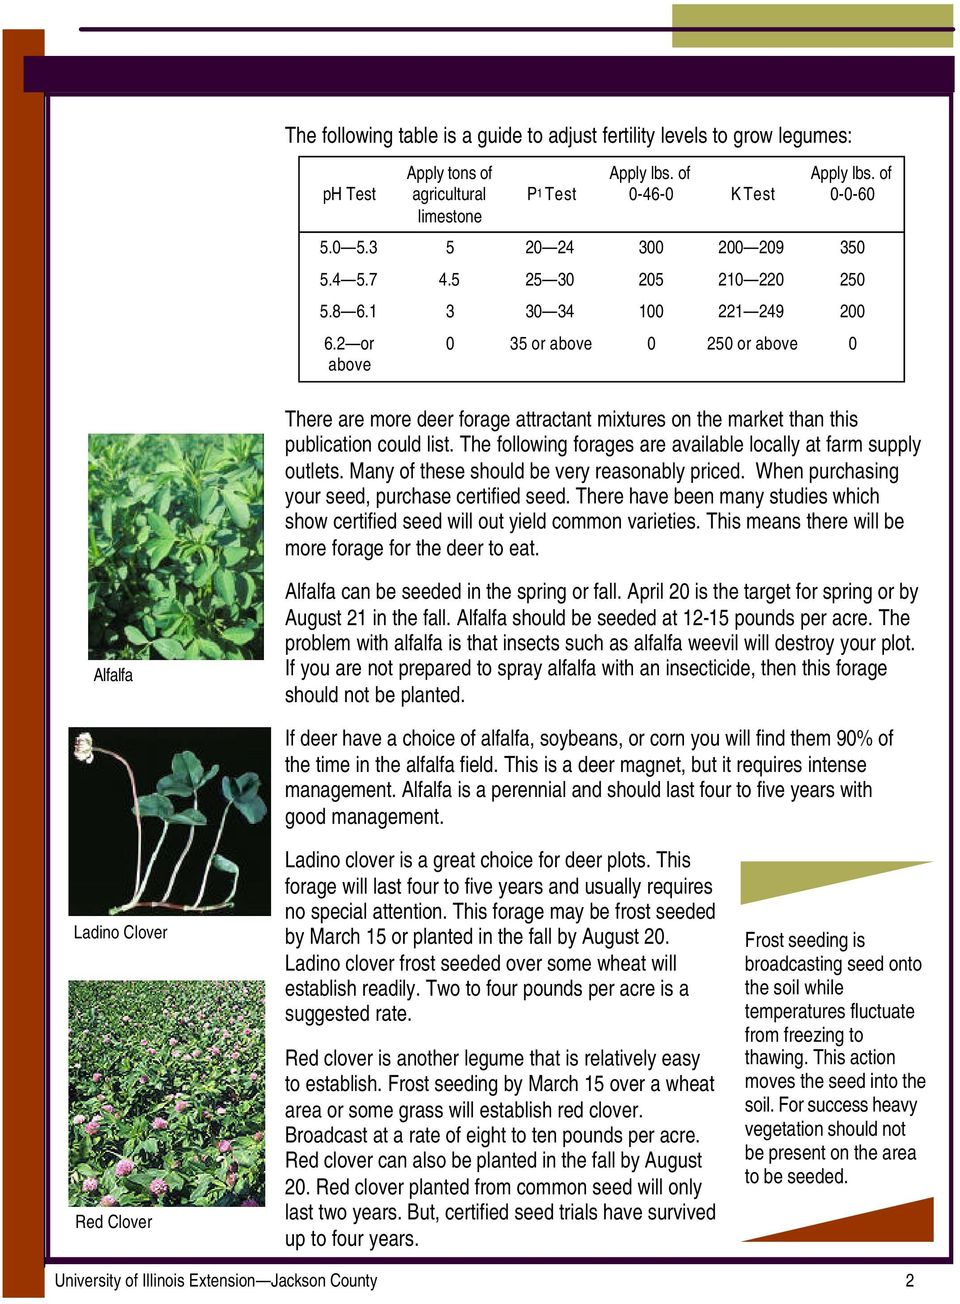 2 or above 0 35 or above 0 250 or above 0 There are more deer forage attractant mixtures on the market than this publication could list.